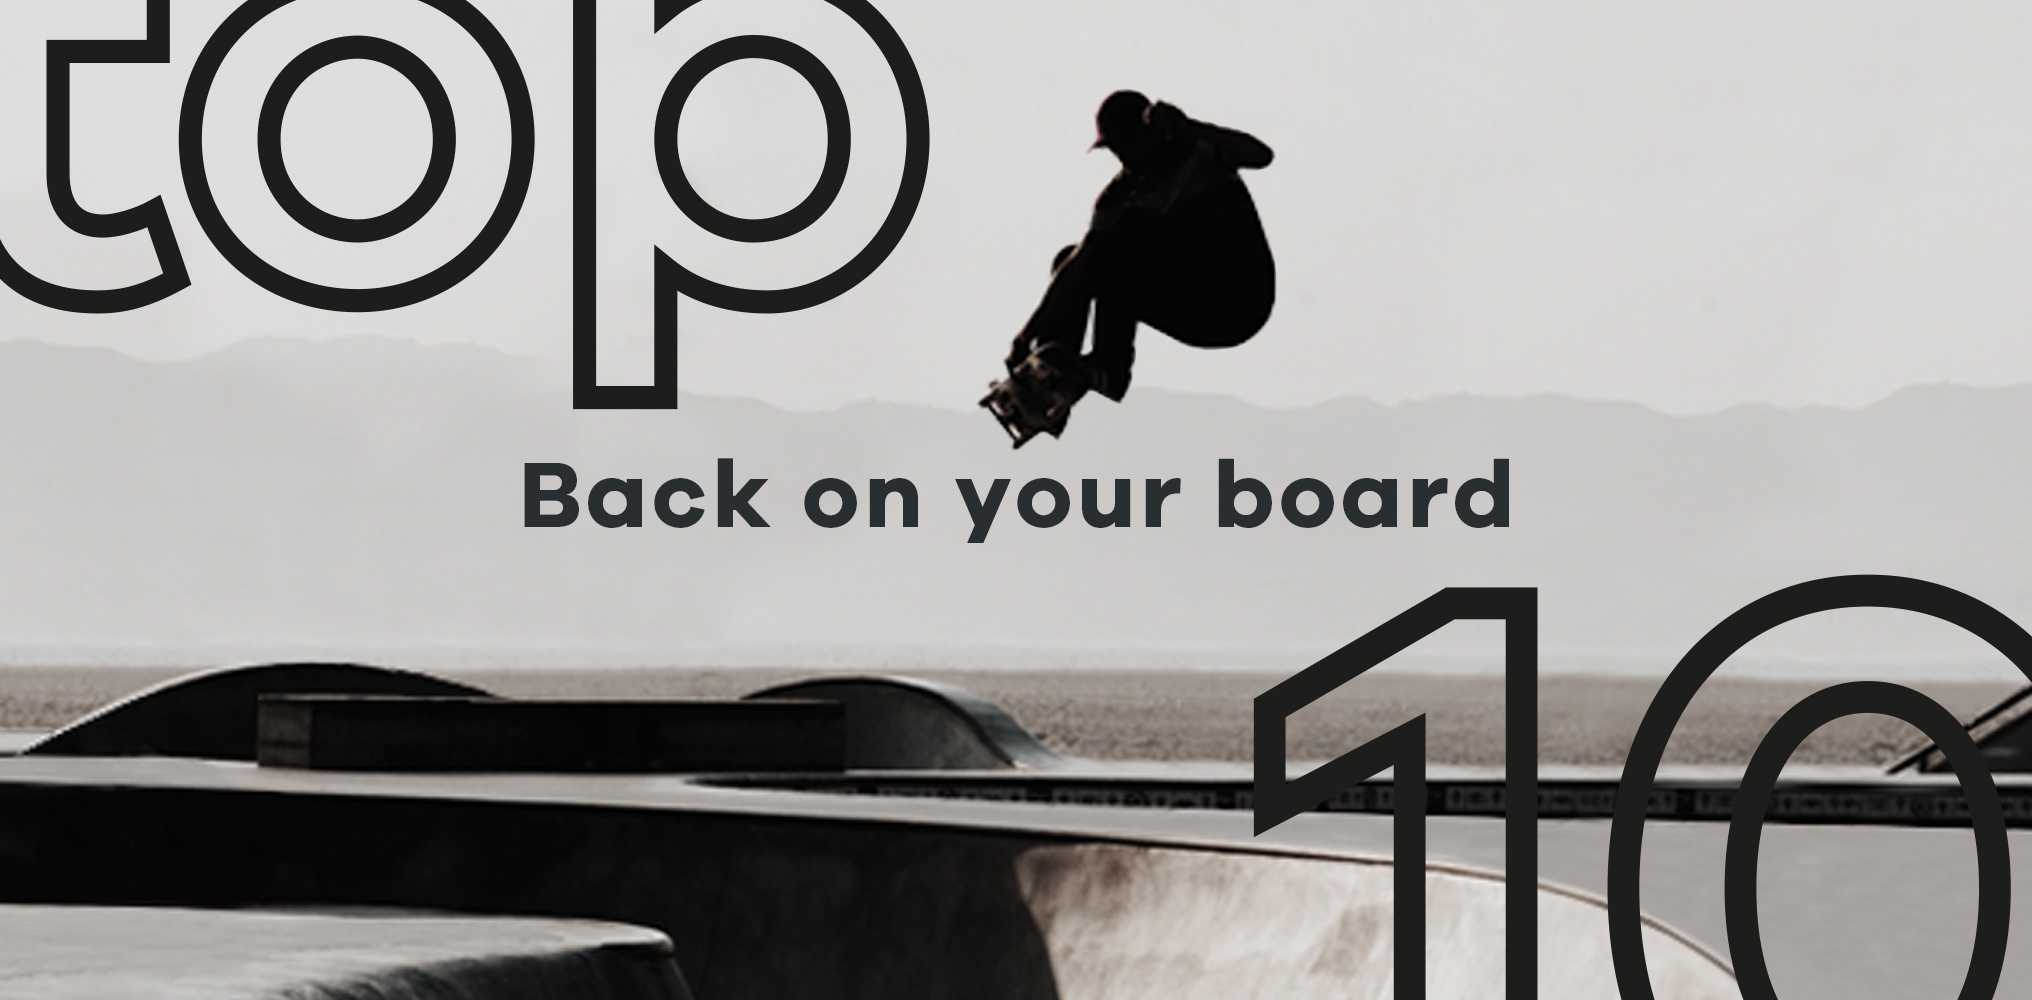 Back on your board | The top 10 skate essentials to get you rolling